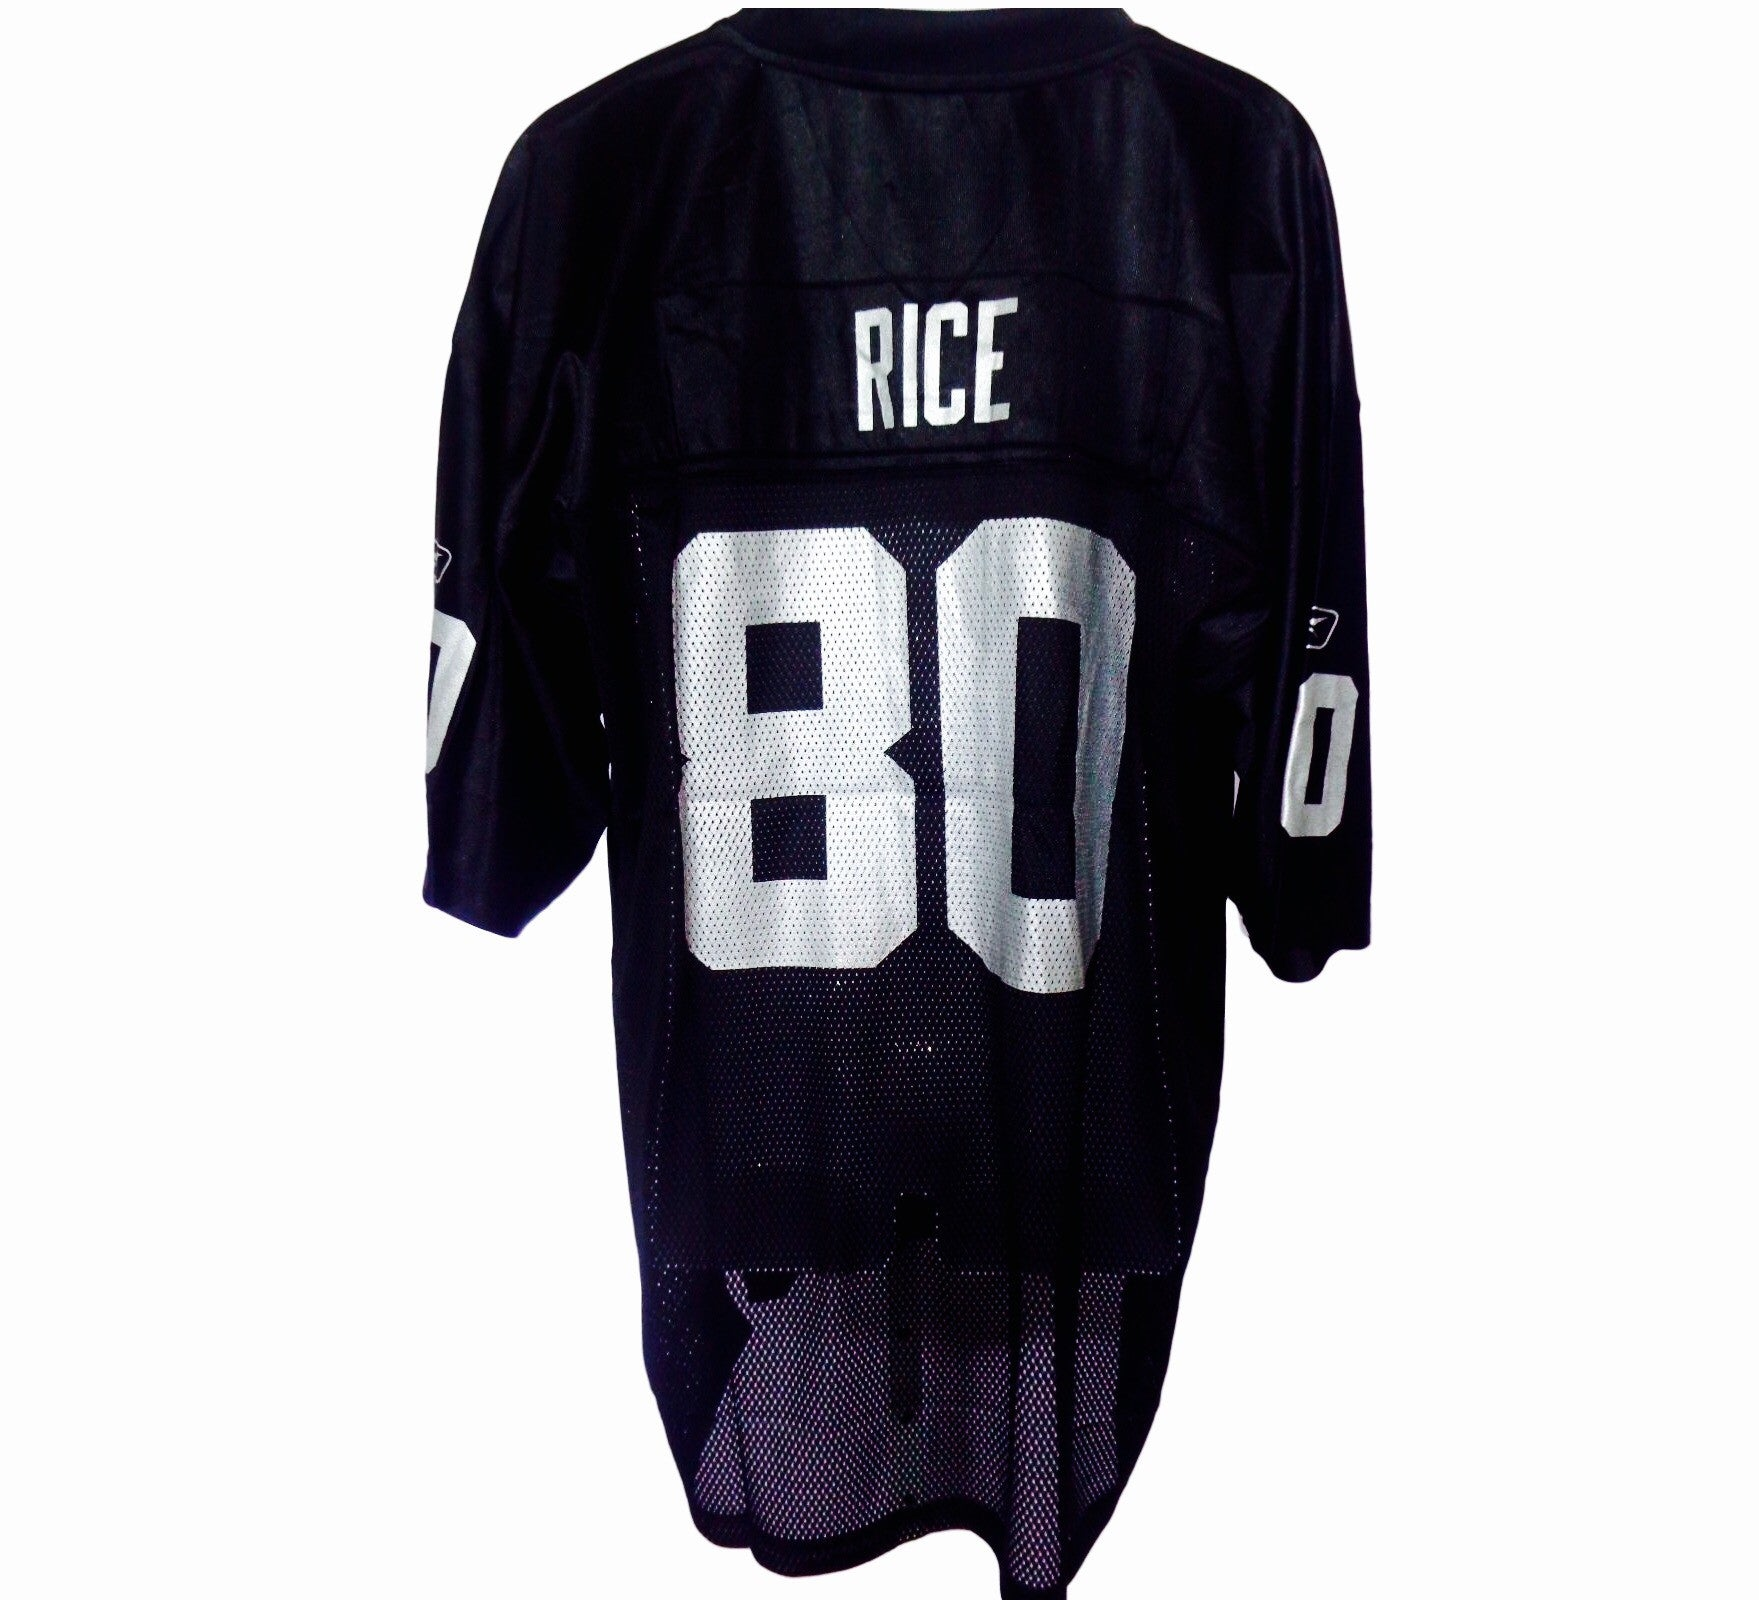 Jerry Rice Raiders Retro Jersey - And Still